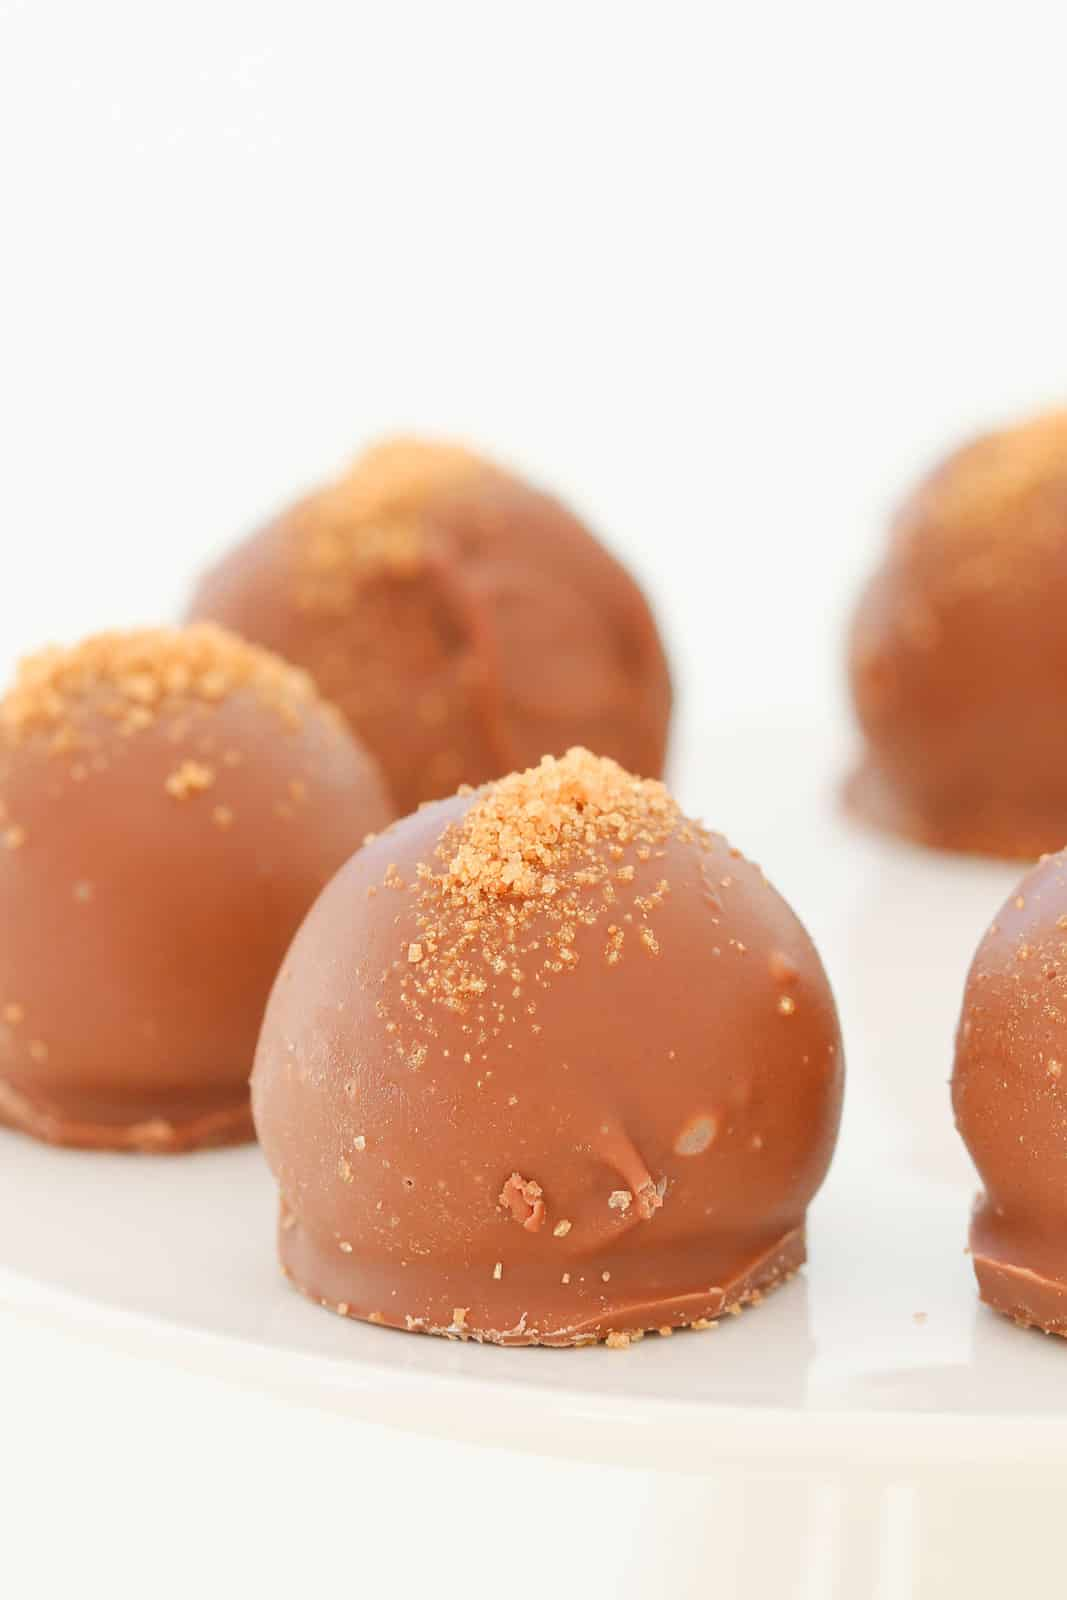 A close up of caramel Tim Tam cheesecake balls sprinkled with gold sugar.